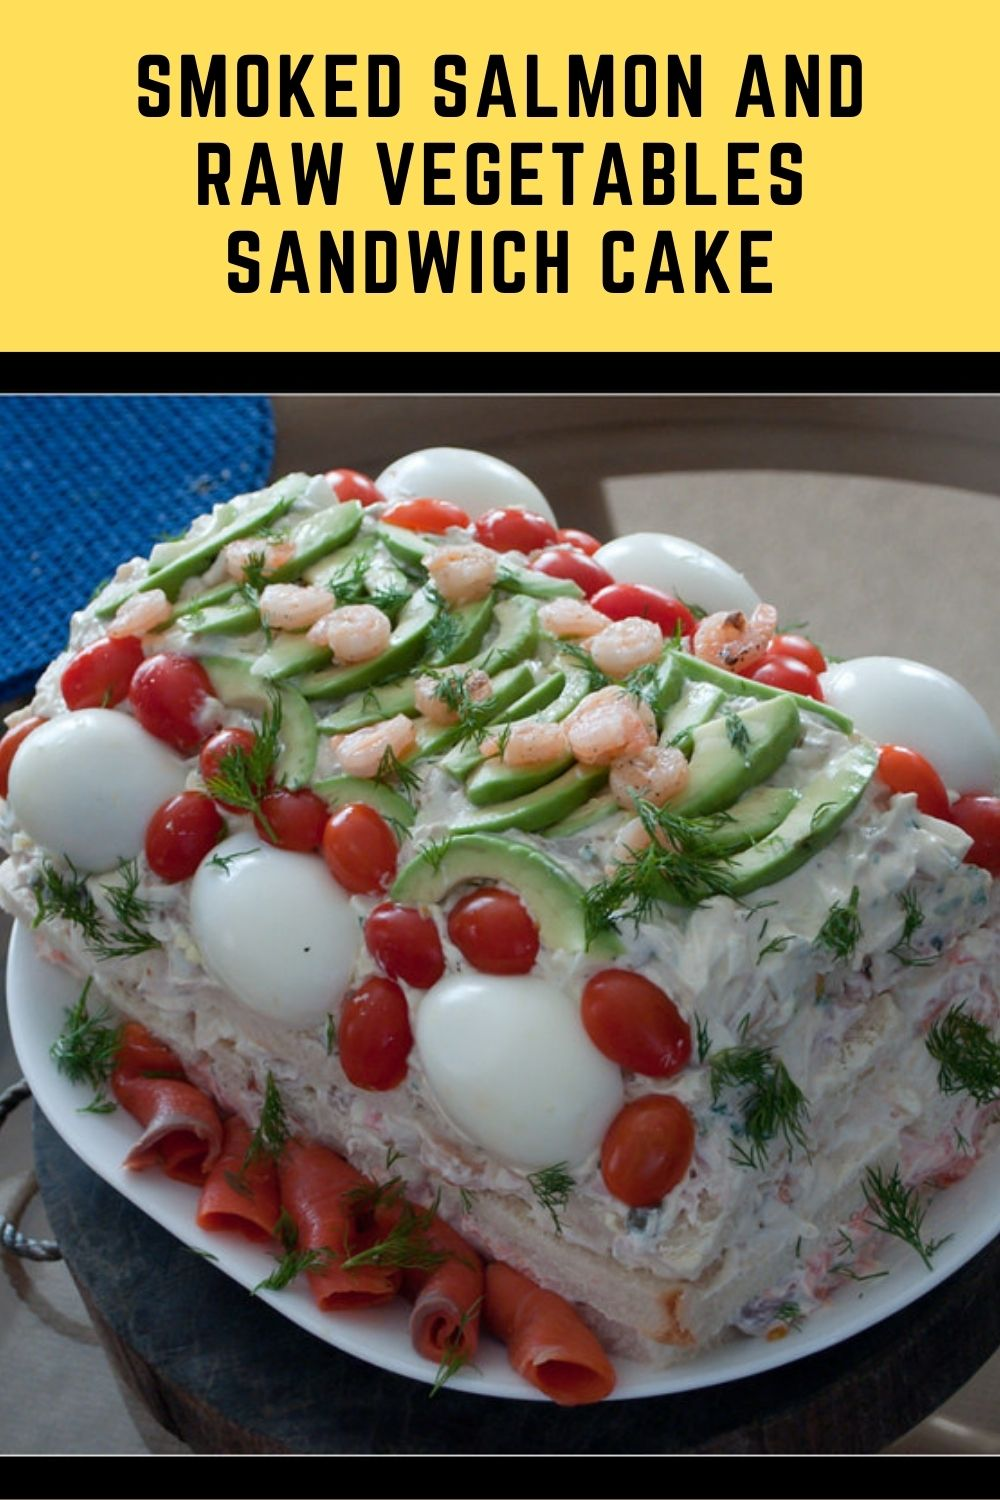 Smoked salmon and raw vegetables sandwich cake